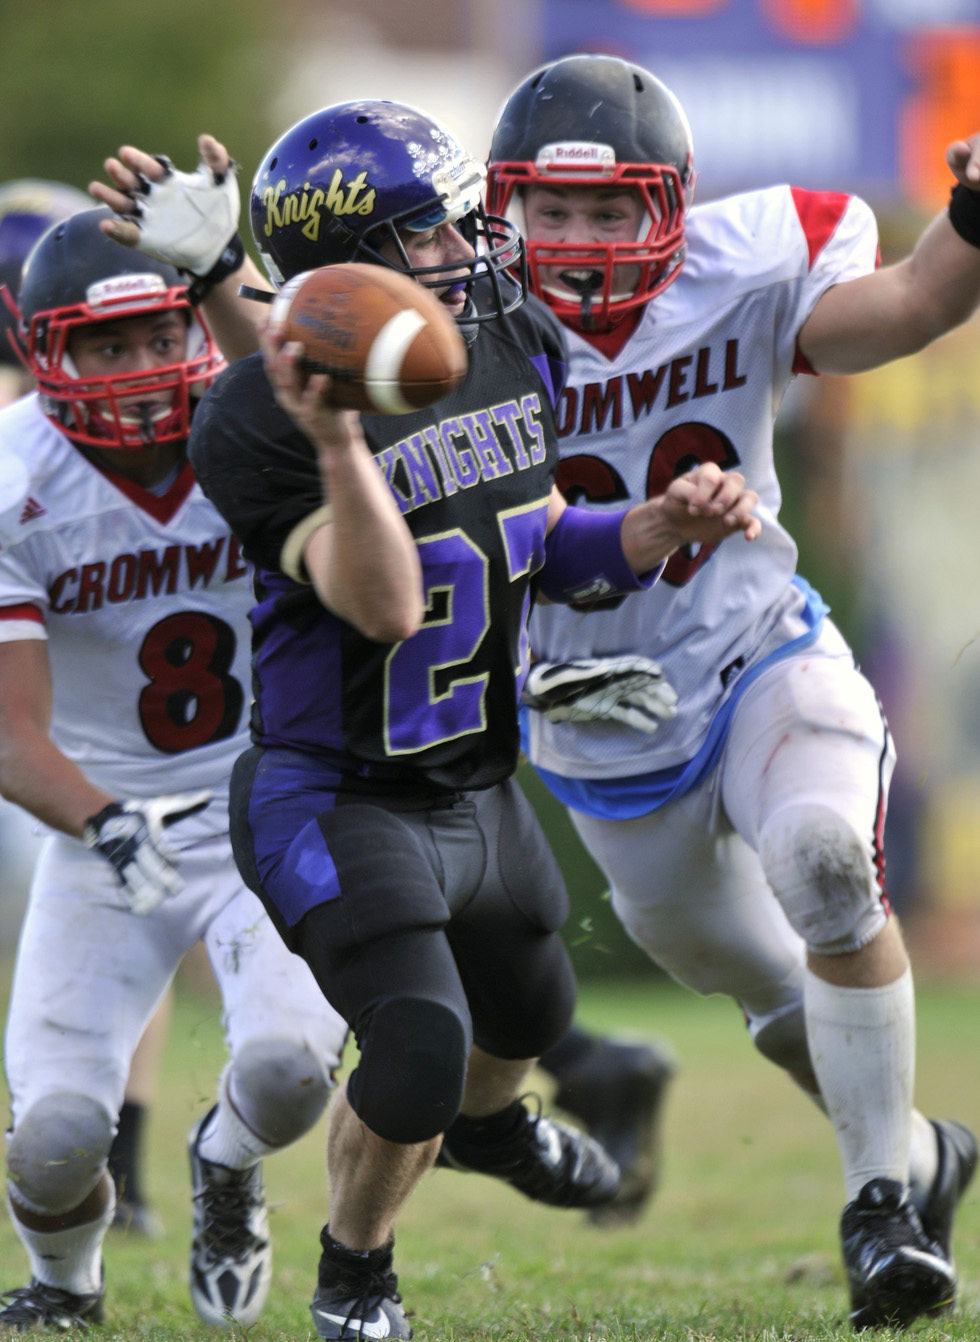 Cromwell versus Ellington/Somers High School Football